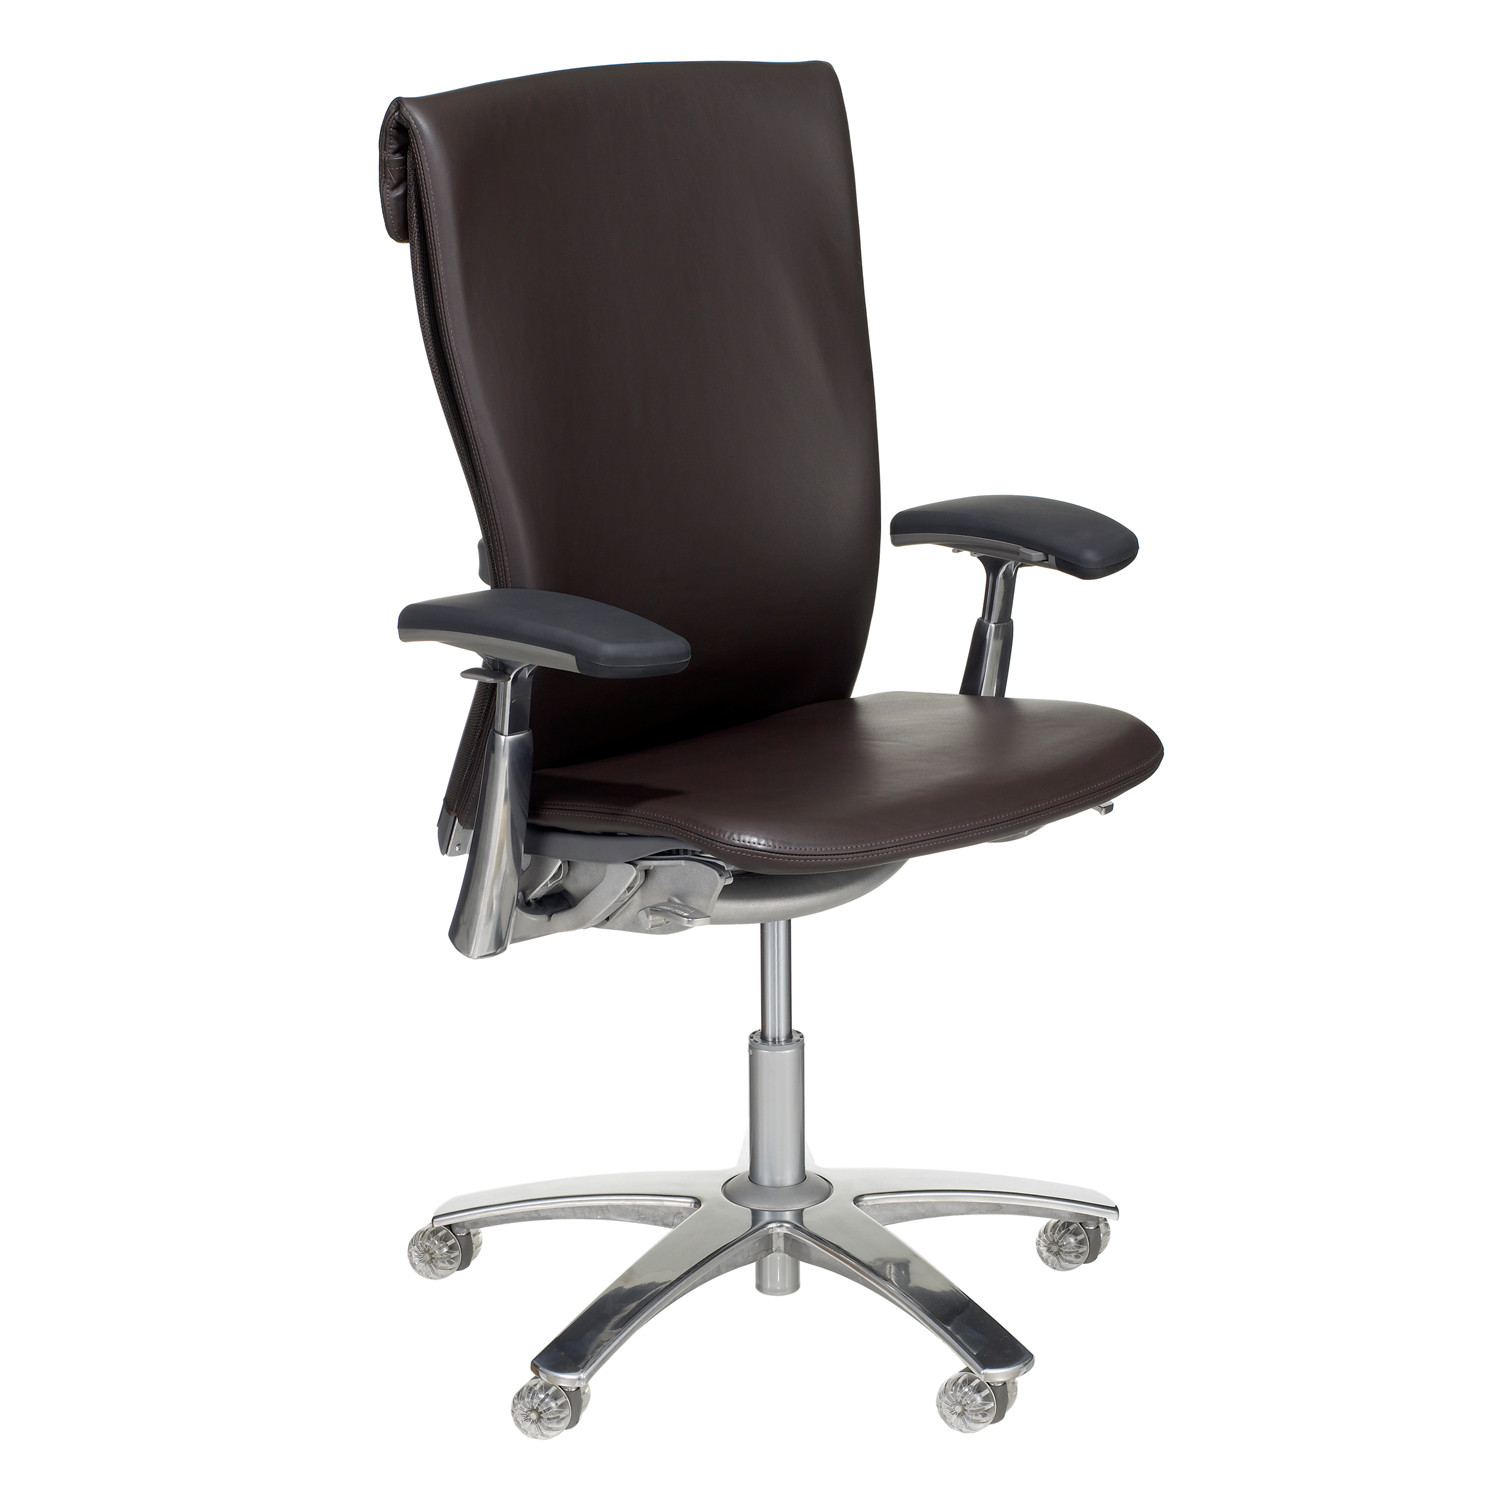 Life office chair modern task chairs apres furniture - Knoll life chair parts ...